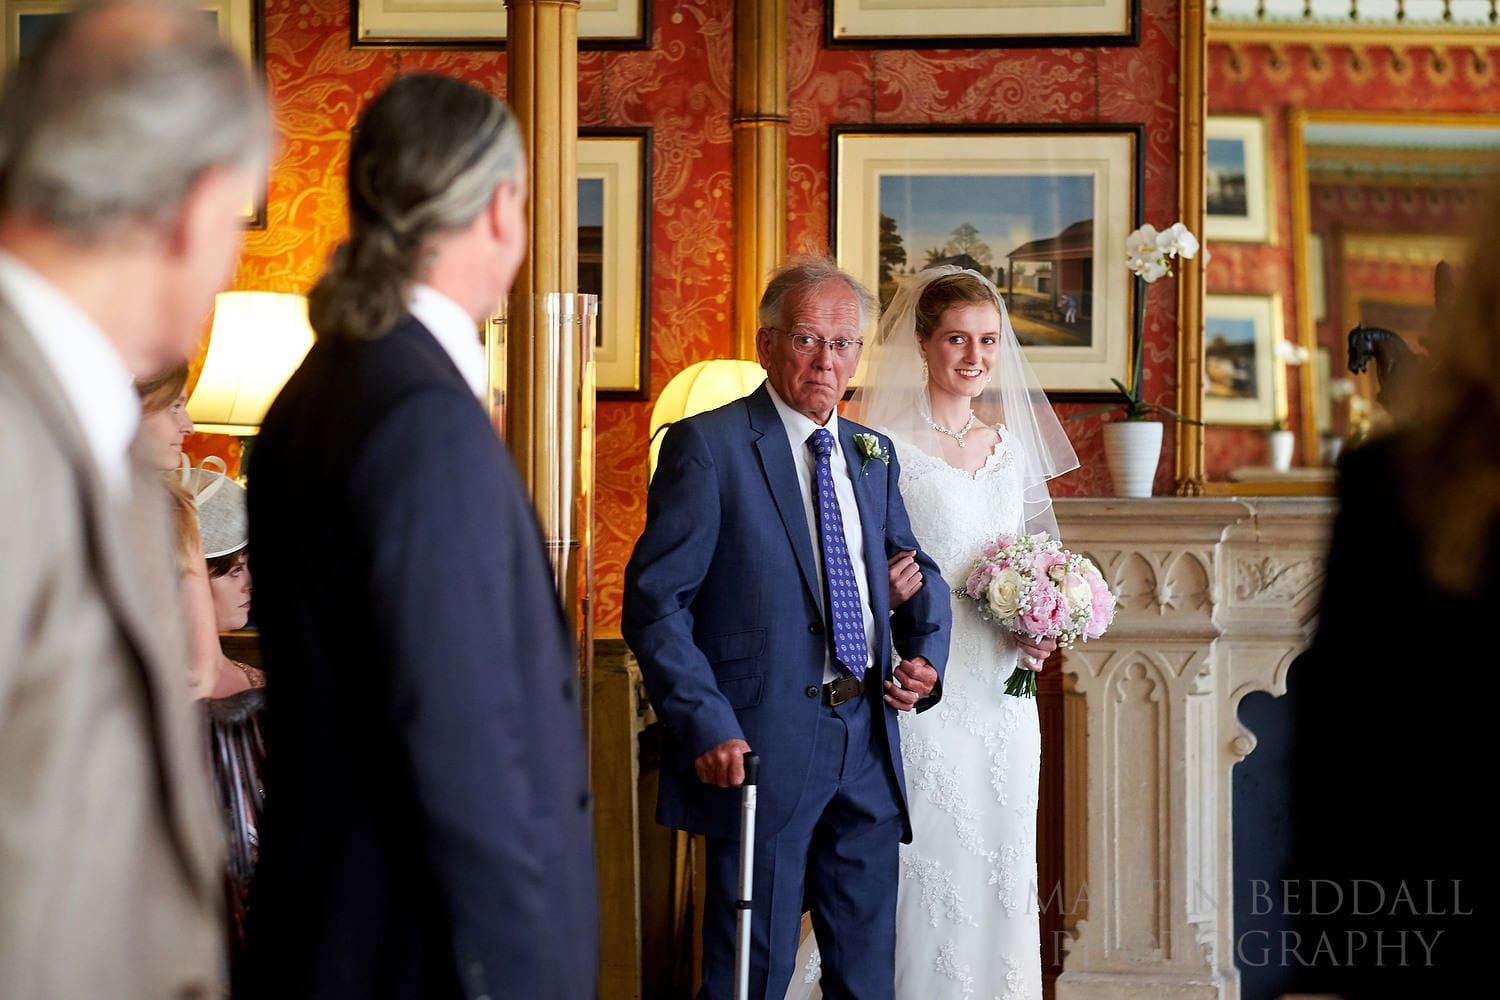 Bride enters with her father for a Royal Pavilion wedding